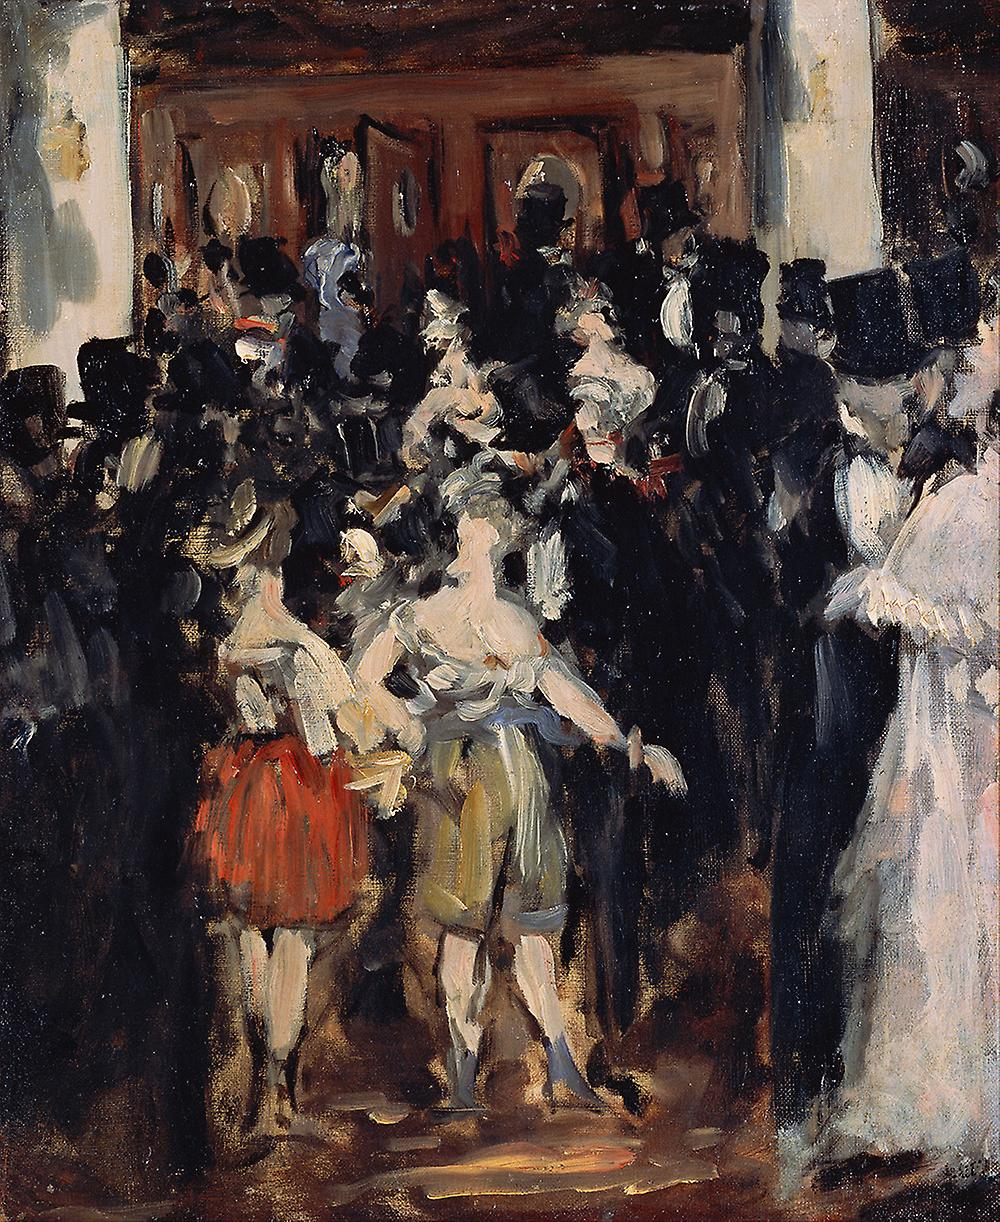 music in the tuileries by édouard Oil painting reproduction of music in the tuileries by famous artist edouard manet high quality hand made, available in any size from kosh mart us free shipping.